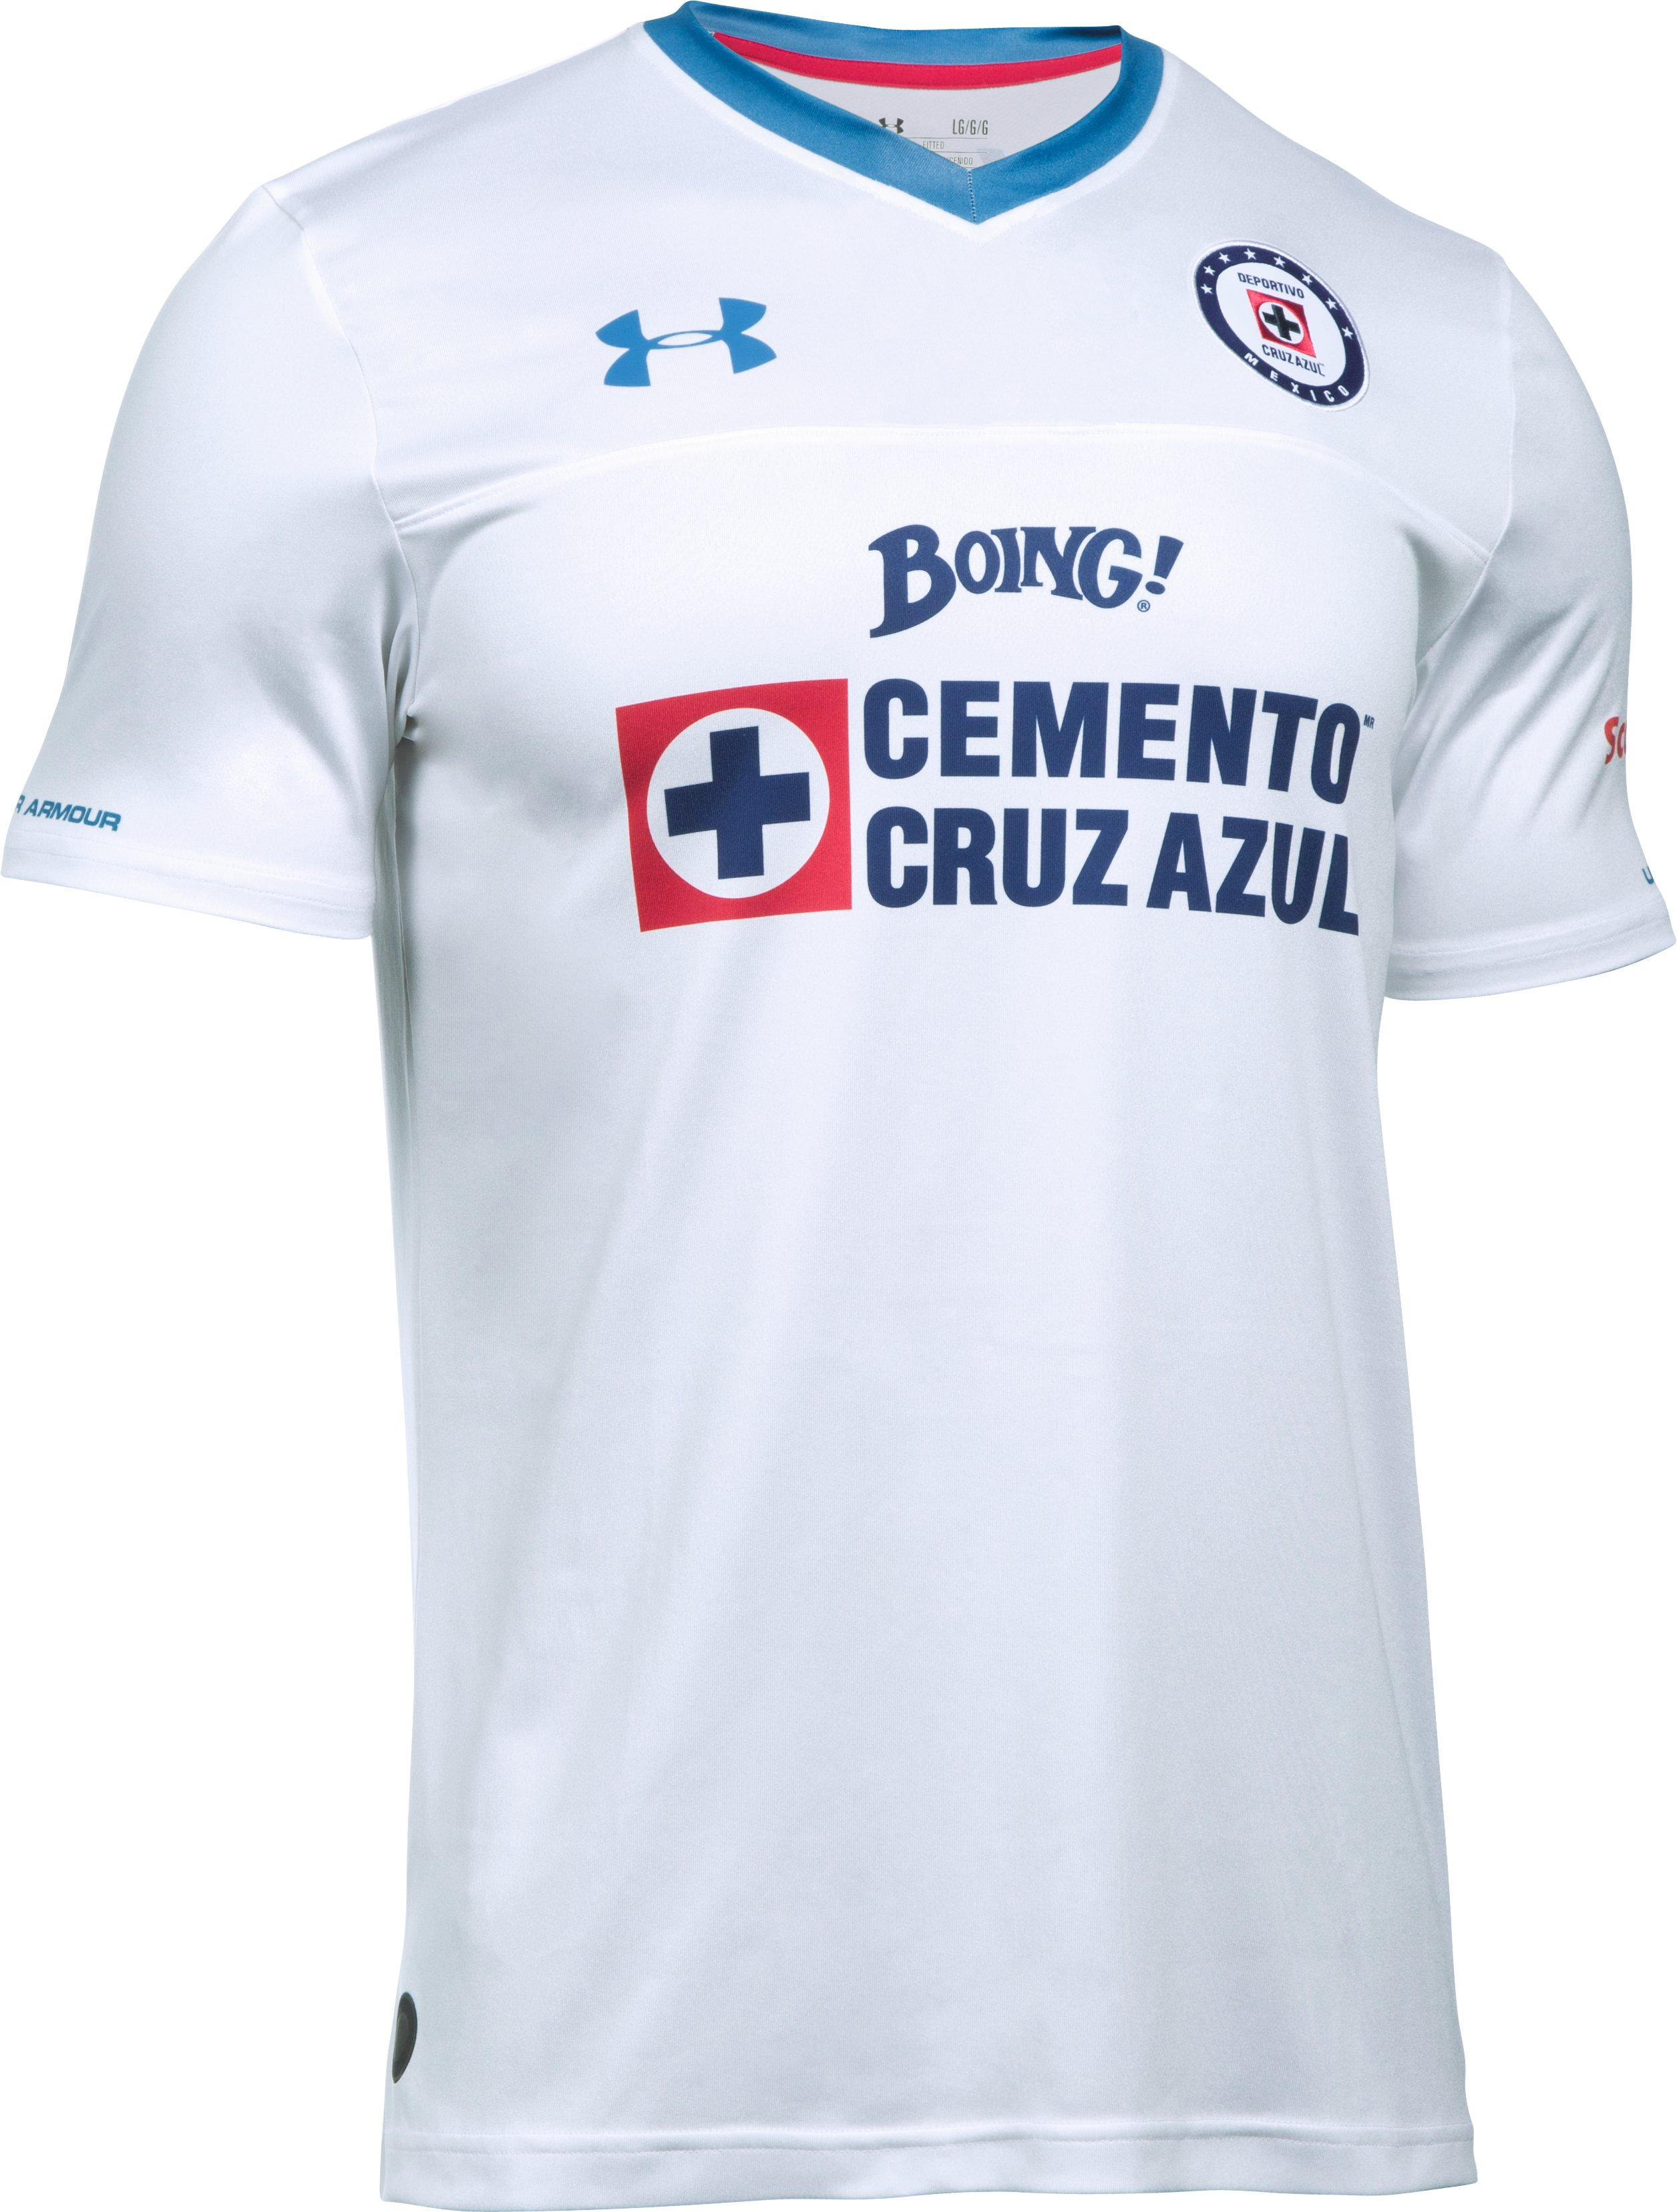 Men's Cruz Azul 16/17 Away Replica Jersey, White